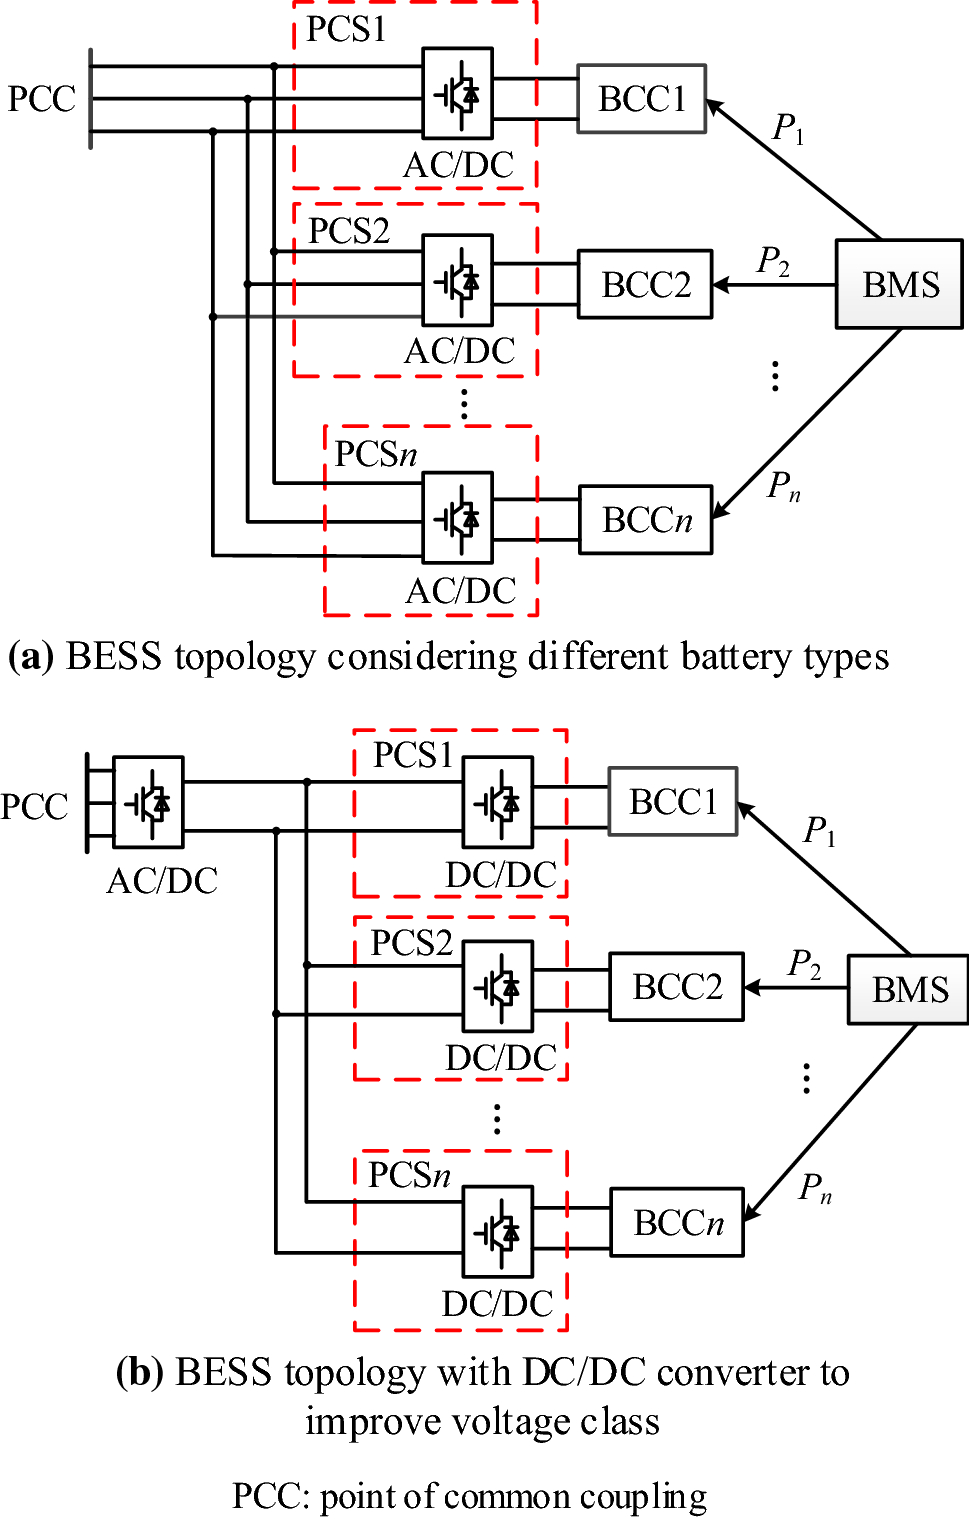 Mode For Reducing Wind Curtailment Based On Battery Transportation Car Wiring Diagram Moreover Dc To Ac Converter Circuit Open Image In New Window